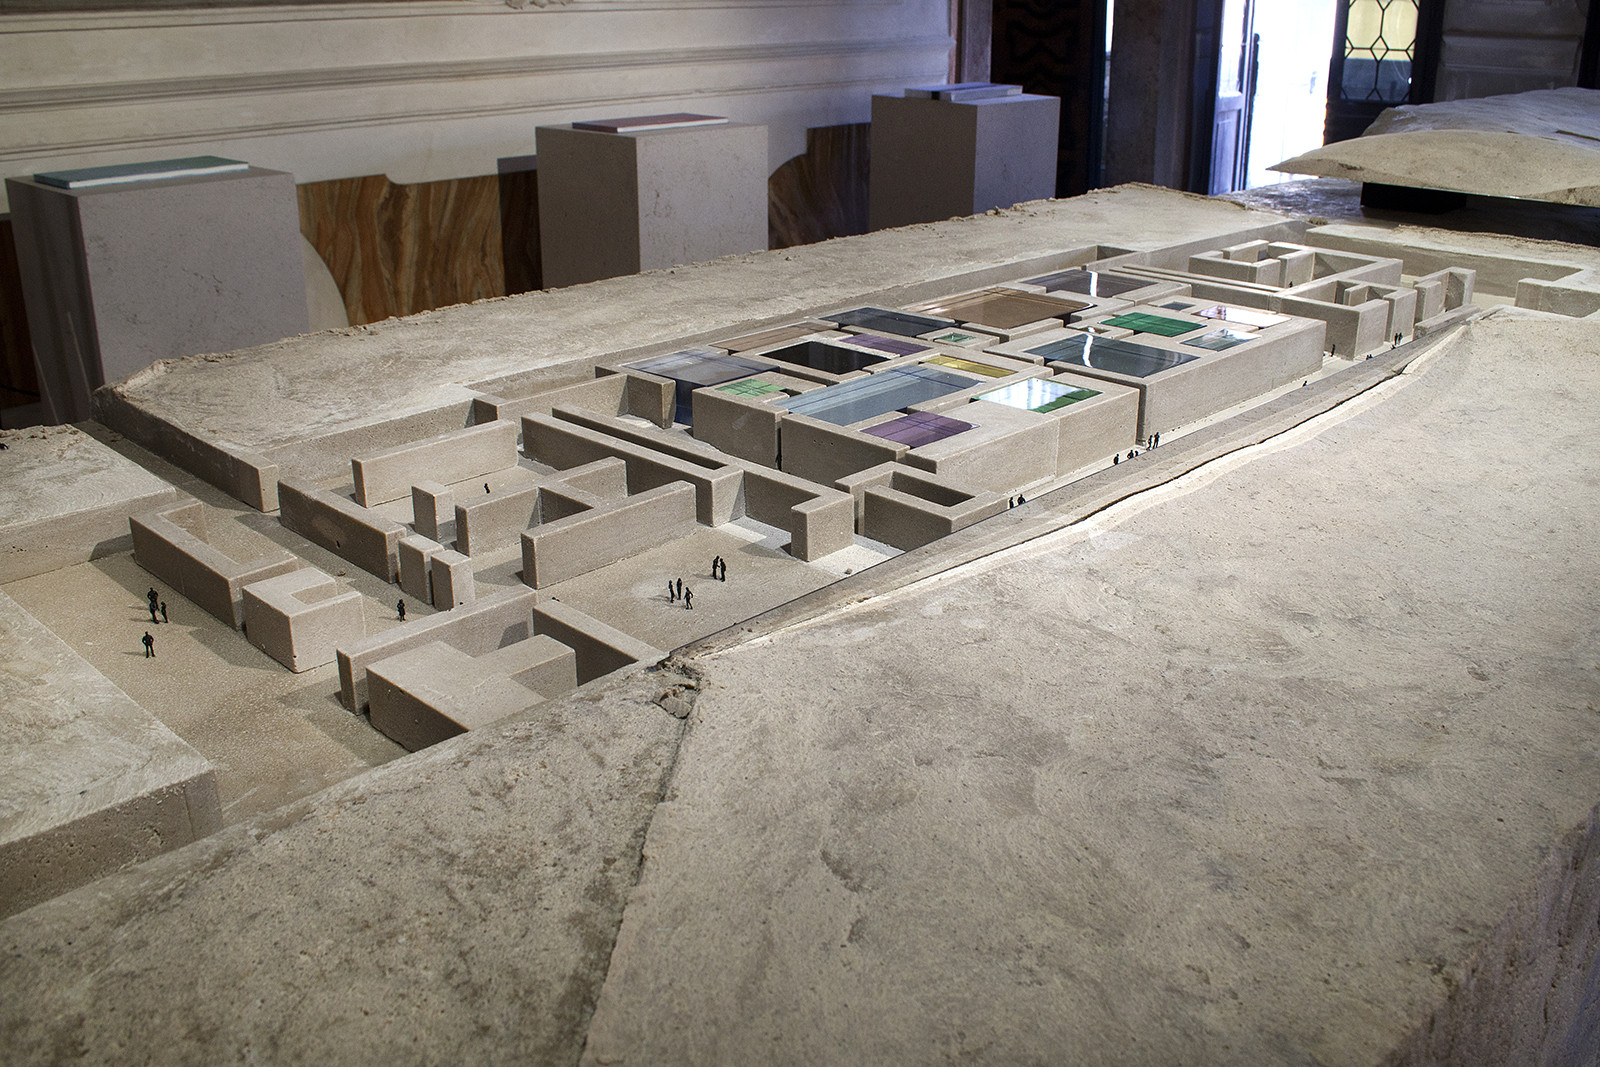 Exhibition. Image © KAAN Architecten